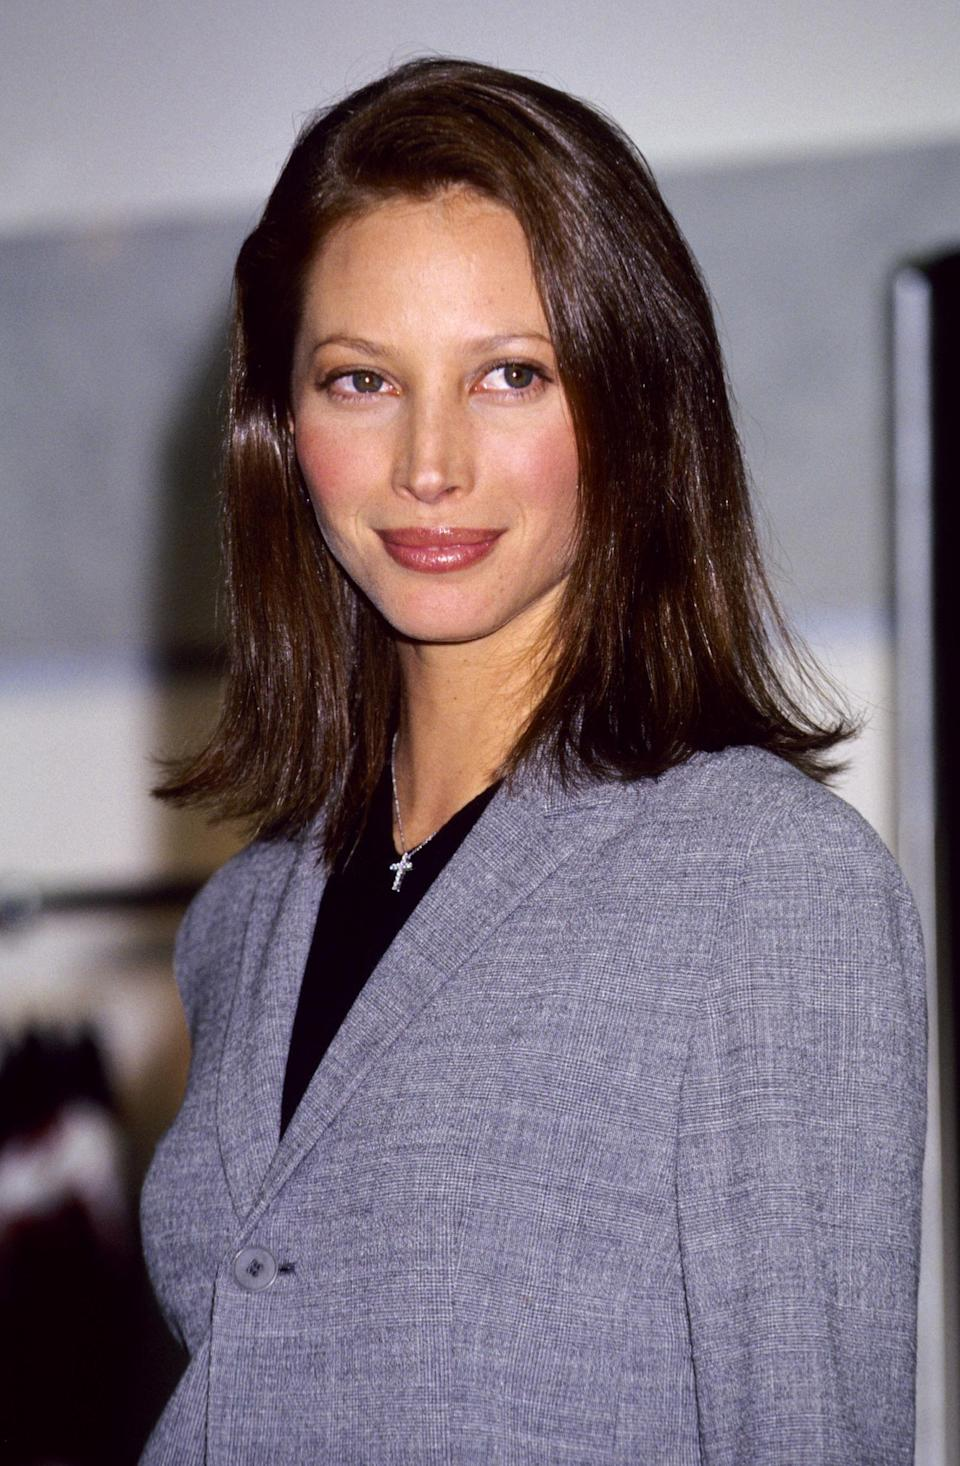 <p>Christy Turlington is the epitome of the 90s at this Calvin Klein advert launch, wearing plain grey and black</p>